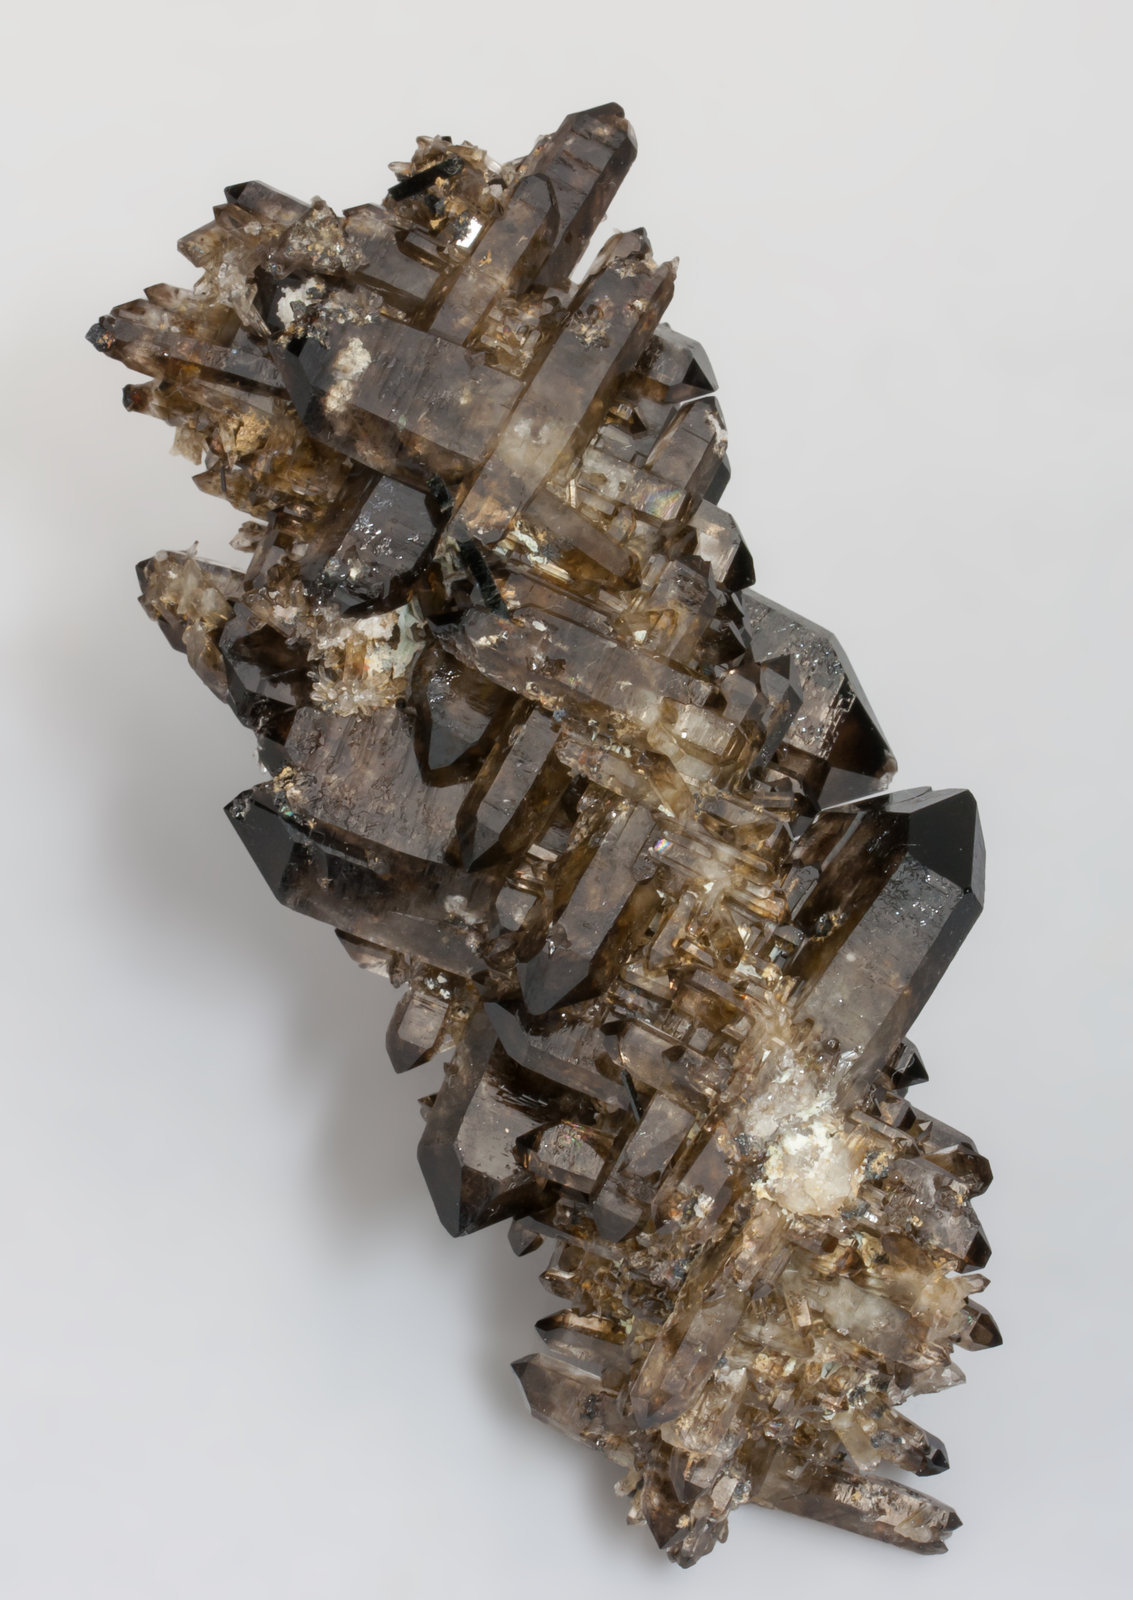 specimens/s_imagesAC0/Quartz-EQ37AC0f.jpg